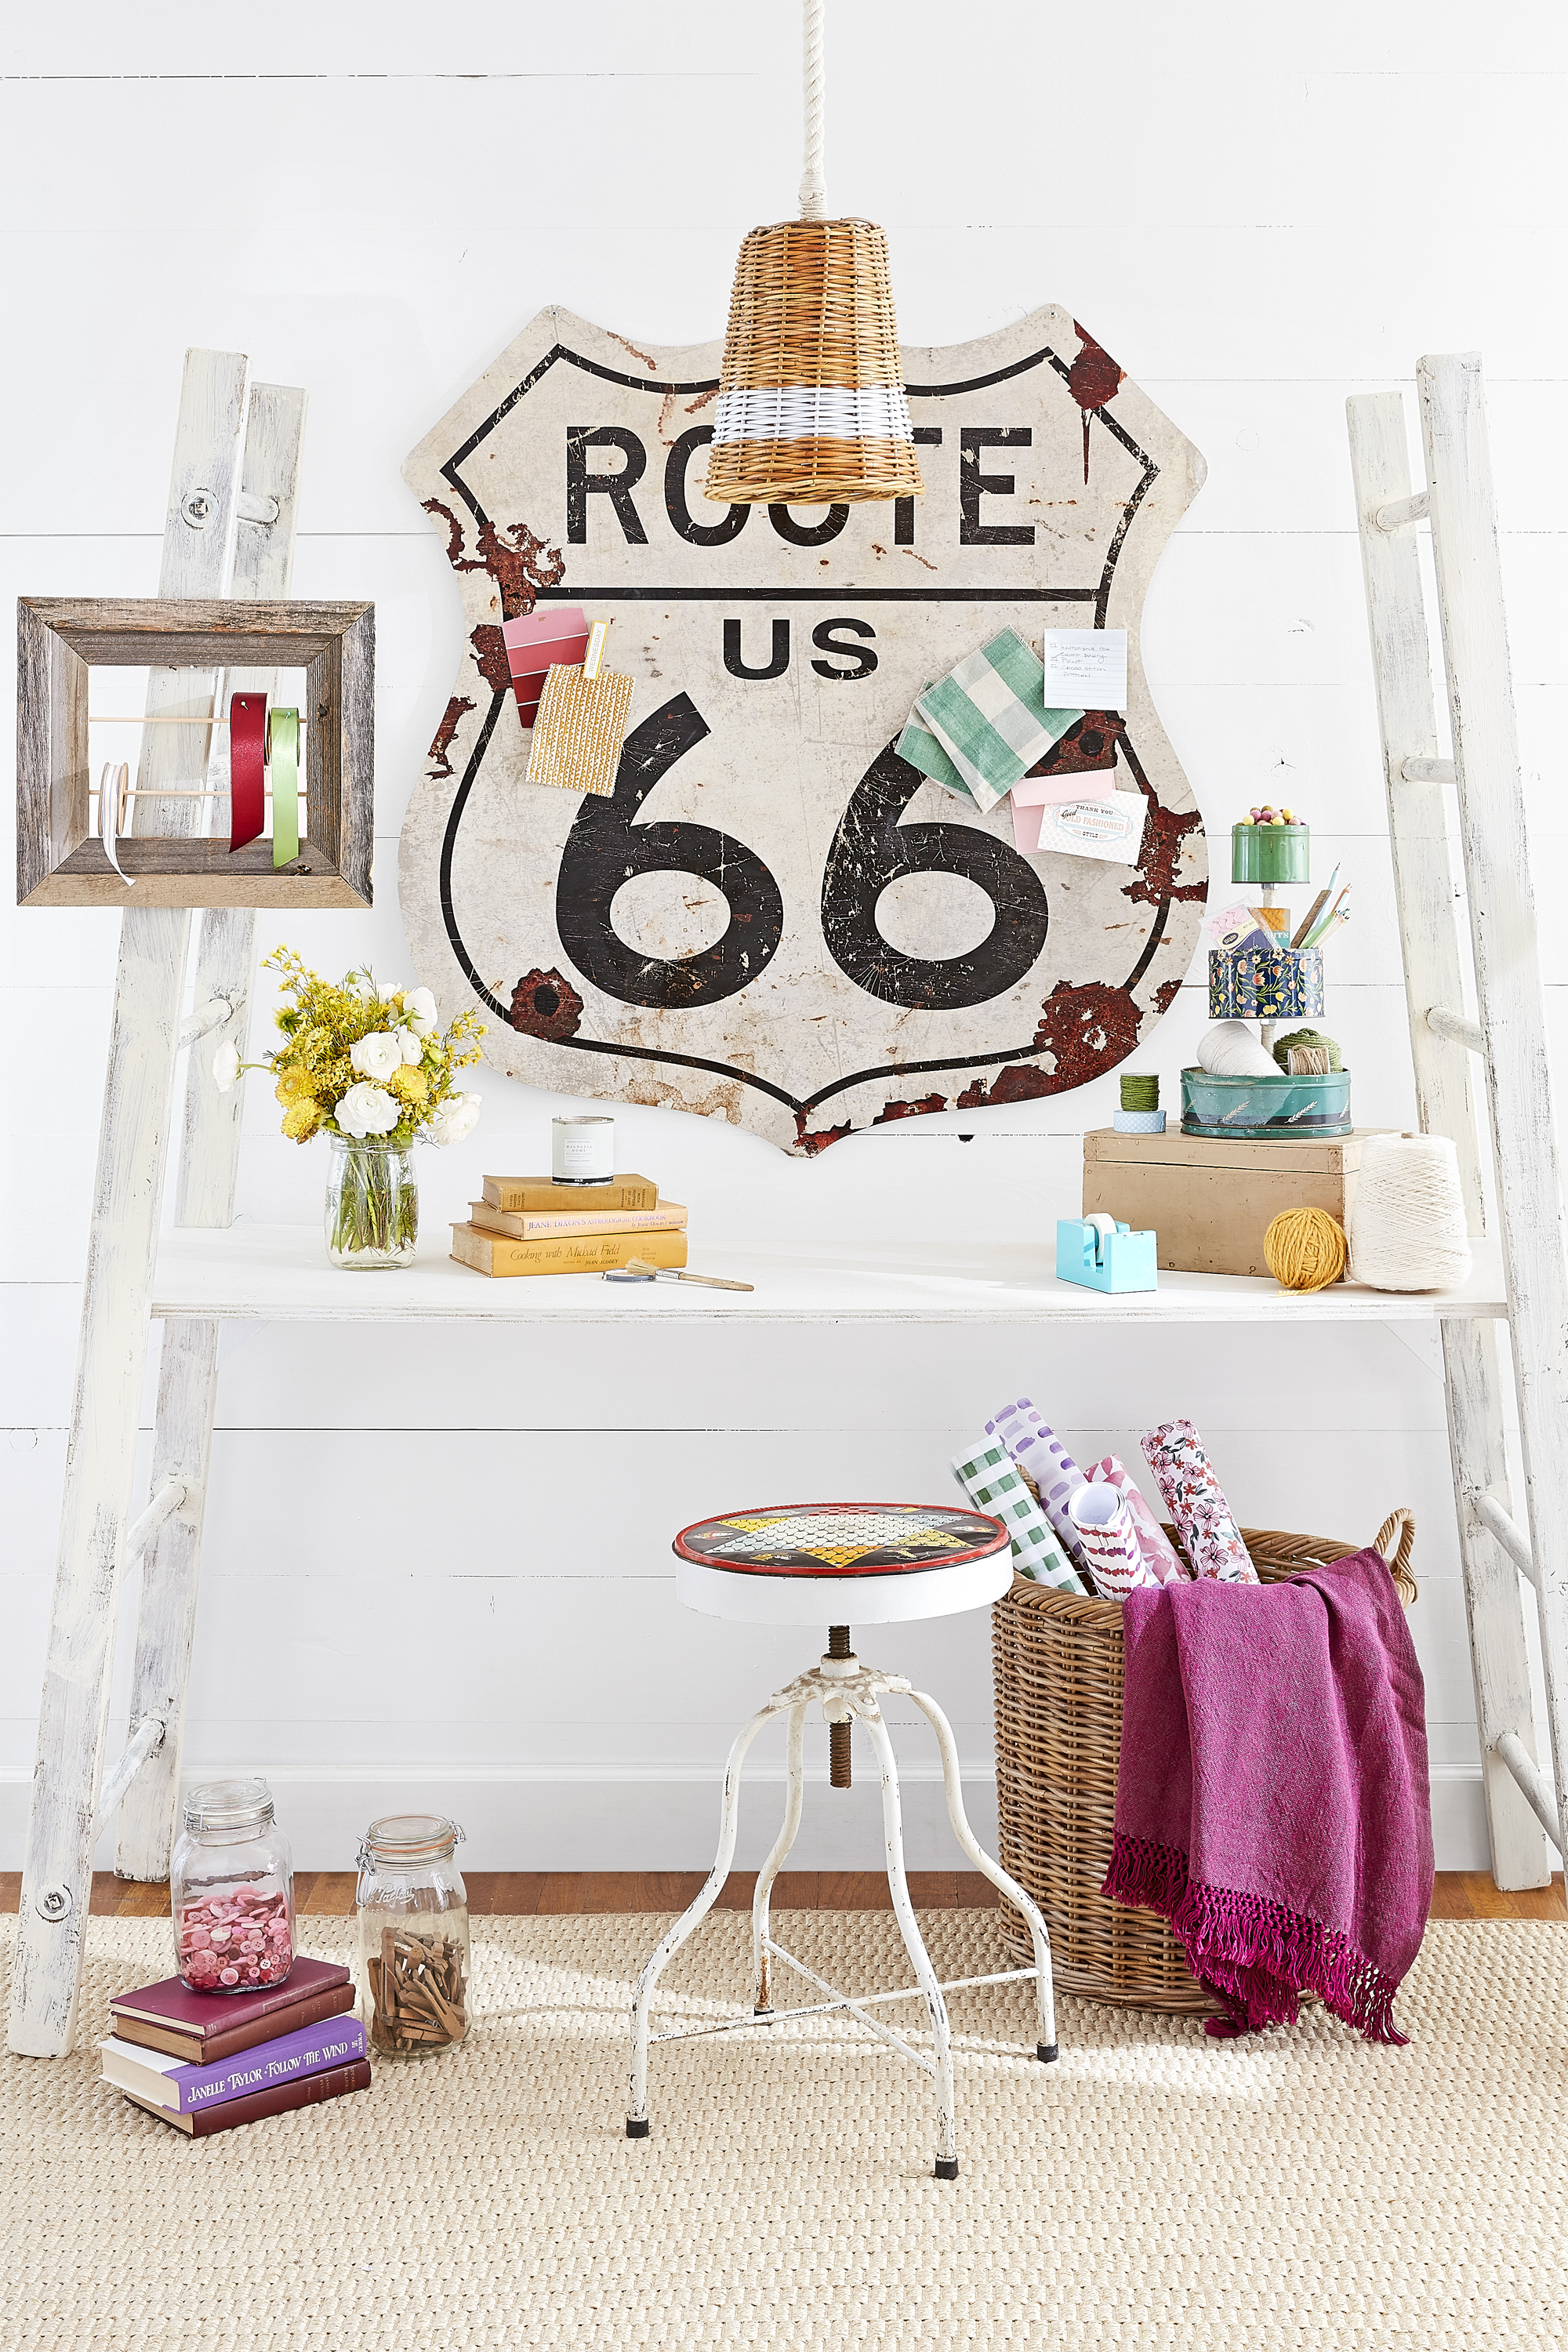 Flea Market Home Decor: 37 Clever Ways To Upcycle Flea Market Finds Into Stylish